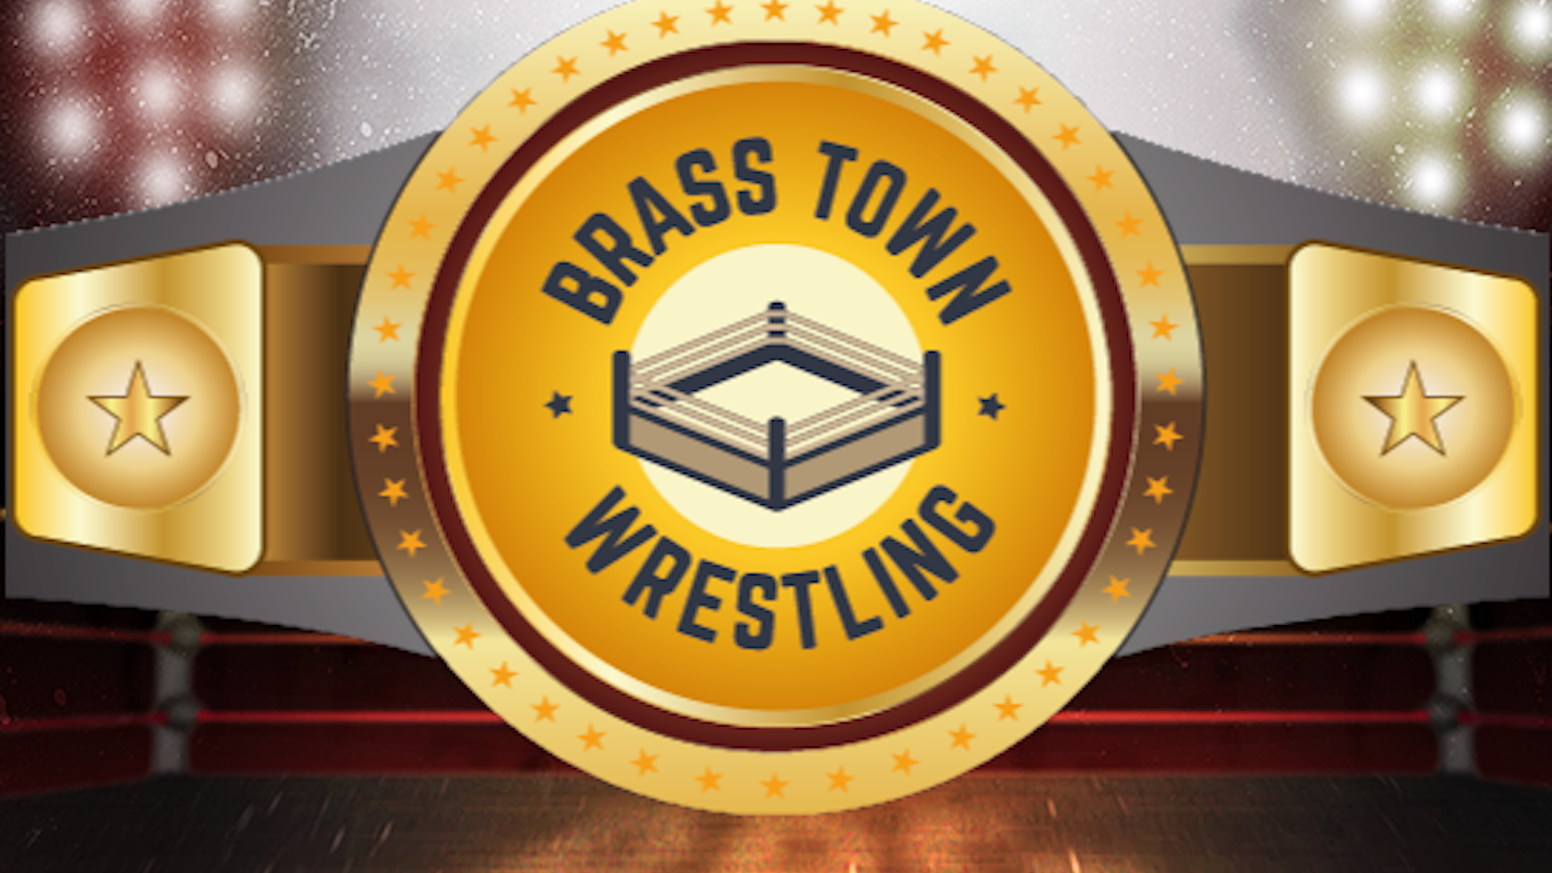 Brass Town Wrestling RPG by Mauro Amatosi » Time to start